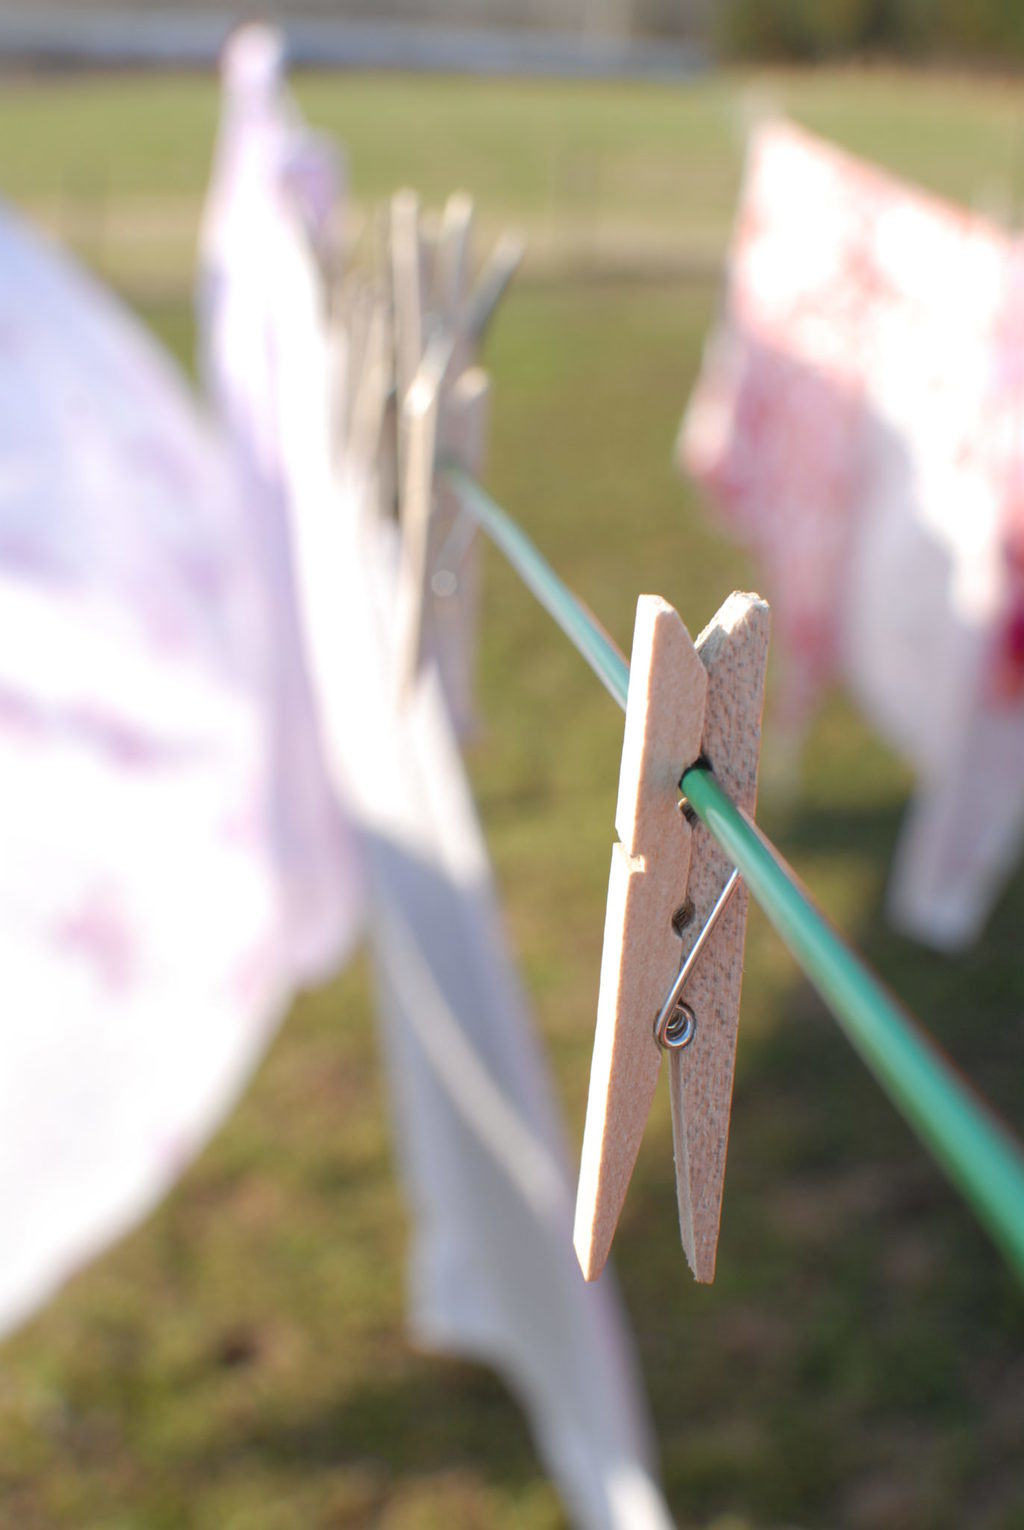 Cows, Clotheslines, And Moving To The Country